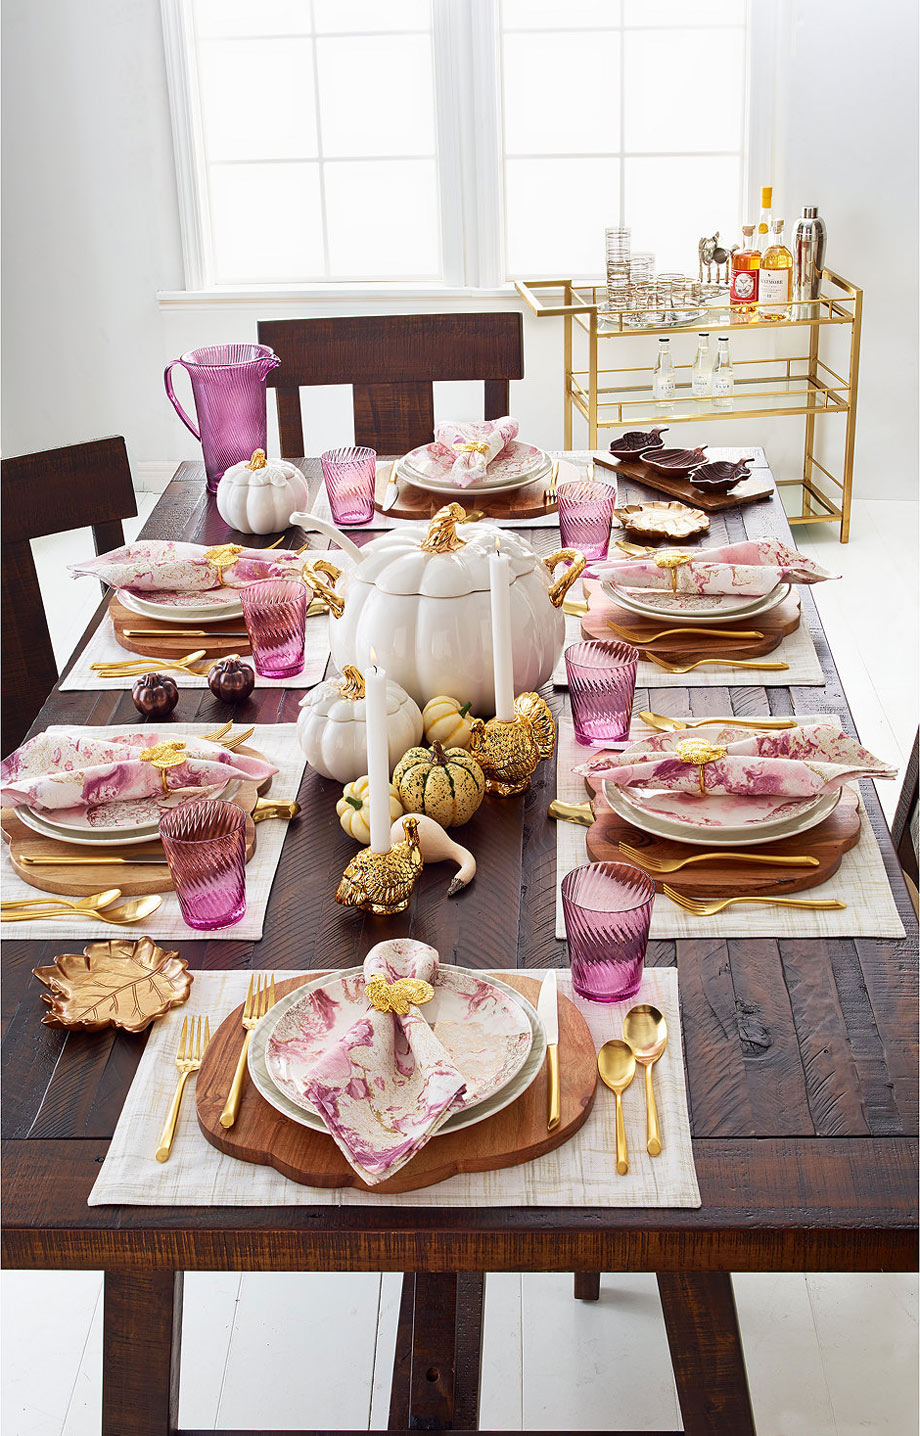 Harvest Marbled Martha Stewart Collection via Macy's.